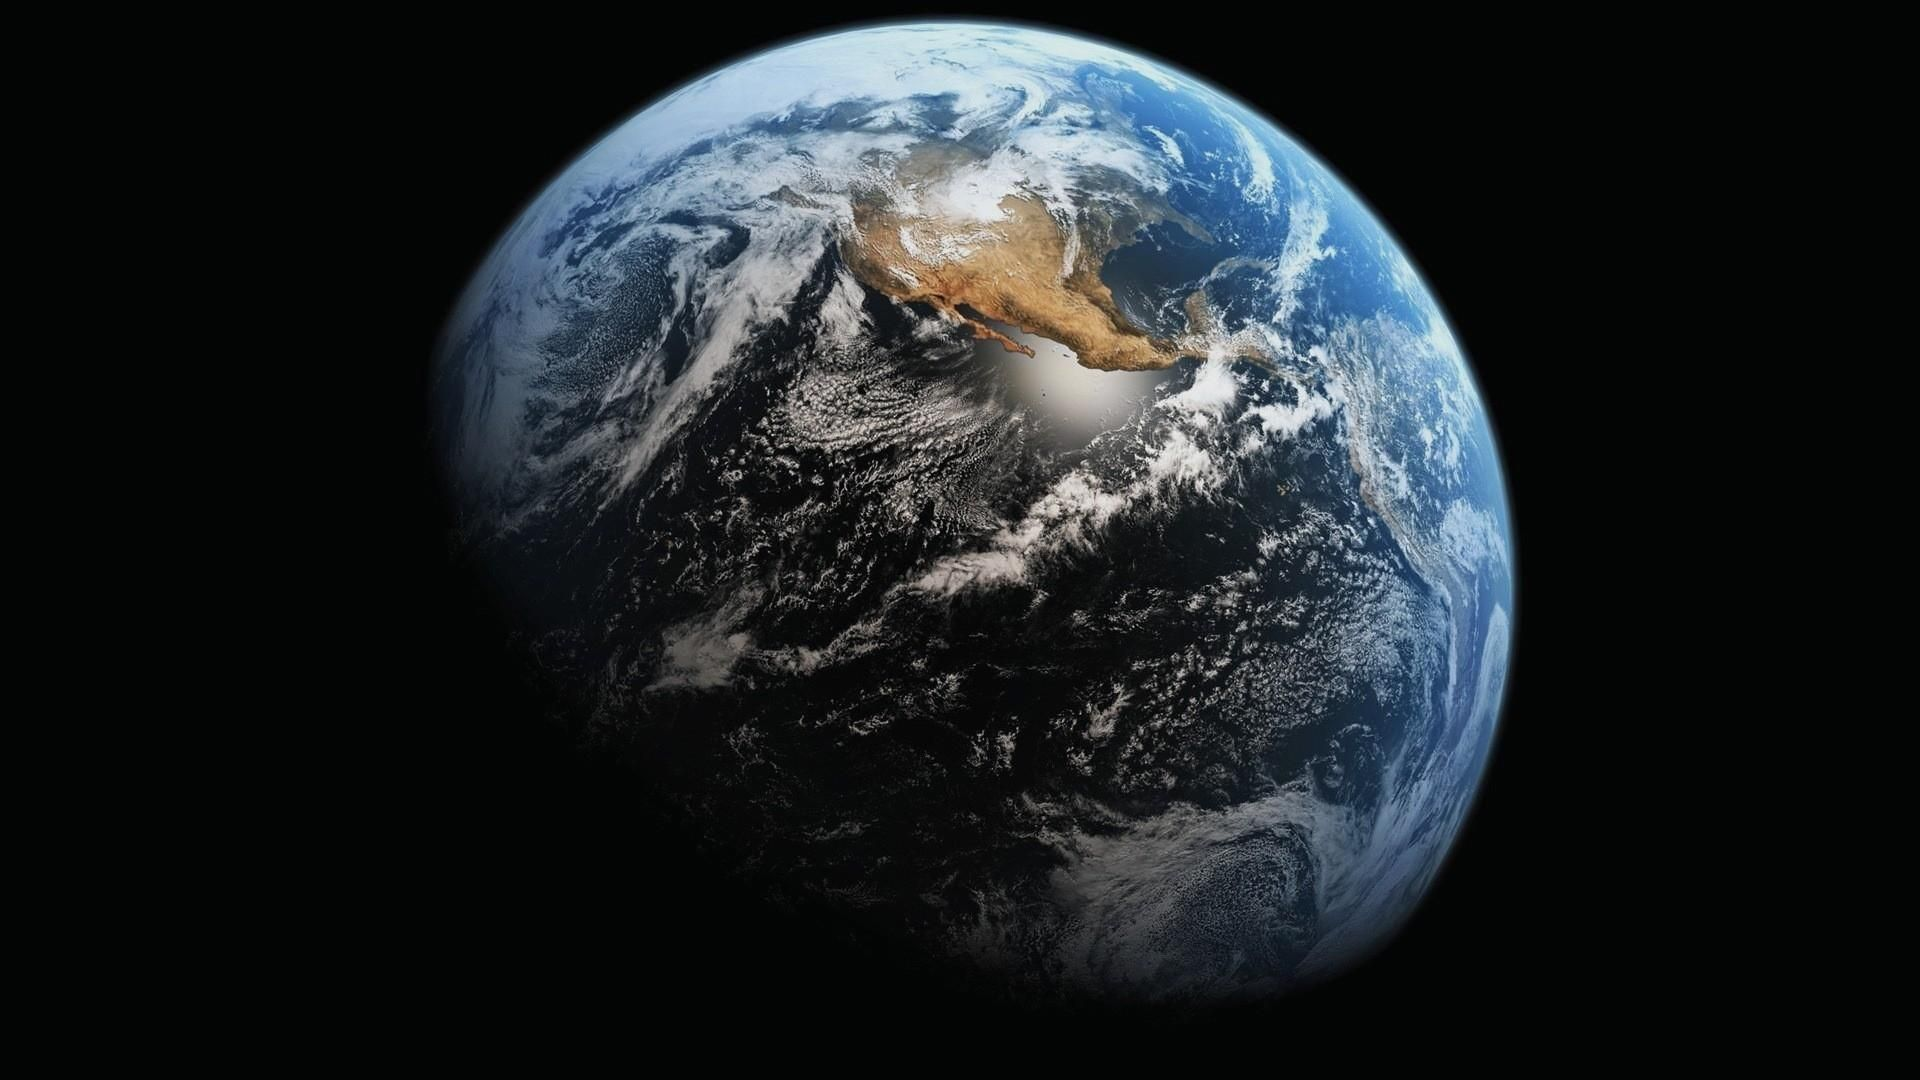 Make Custom Iphone 5 Wallpaper Hd Earth From Space Wallpaper 1920 215 1080 Images Of Earth